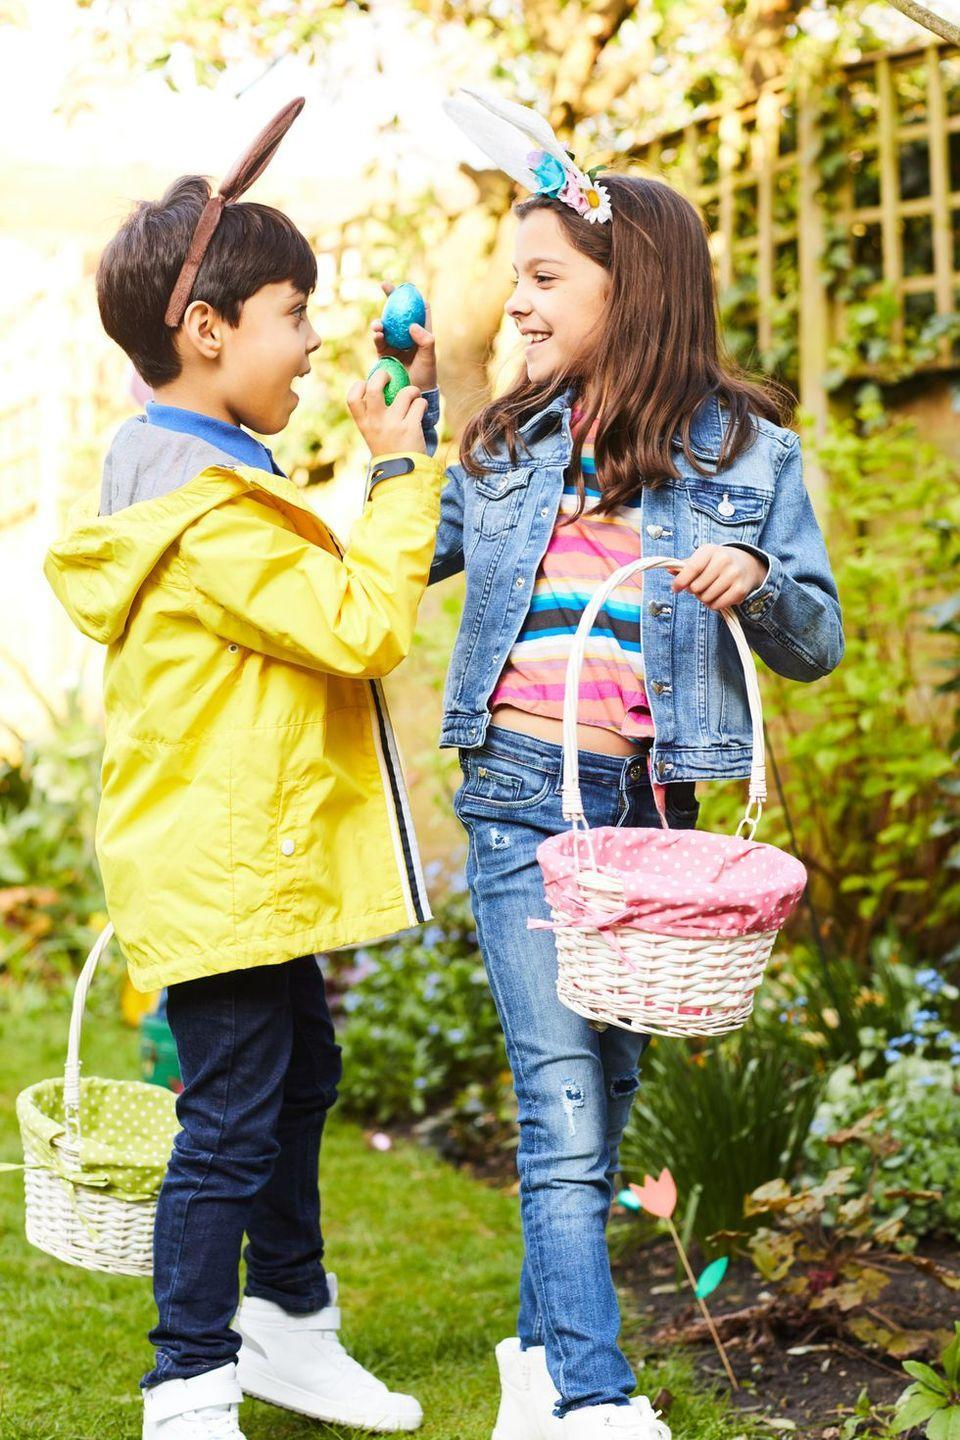 """<p>It's just like a traditional relay race, but this one involves eggs! We love that this cute idea fosters teamwork. </p><p><strong>Get the tutorial at <a href=""""https://www.playpartyplan.com/10-fun-and-creative-easter-egg-hunt/"""" rel=""""nofollow noopener"""" target=""""_blank"""" data-ylk=""""slk:Play Party Plan"""" class=""""link rapid-noclick-resp"""">Play Party Plan</a>.</strong></p><p><strong><a class=""""link rapid-noclick-resp"""" href=""""https://www.amazon.com/s?k=easter+baskets&ref=nb_sb_noss_2&tag=syn-yahoo-20&ascsubtag=%5Bartid%7C10050.g.4083%5Bsrc%7Cyahoo-us"""" rel=""""nofollow noopener"""" target=""""_blank"""" data-ylk=""""slk:SHOP EASTER BASKETS"""">SHOP EASTER BASKETS</a><br></strong></p>"""